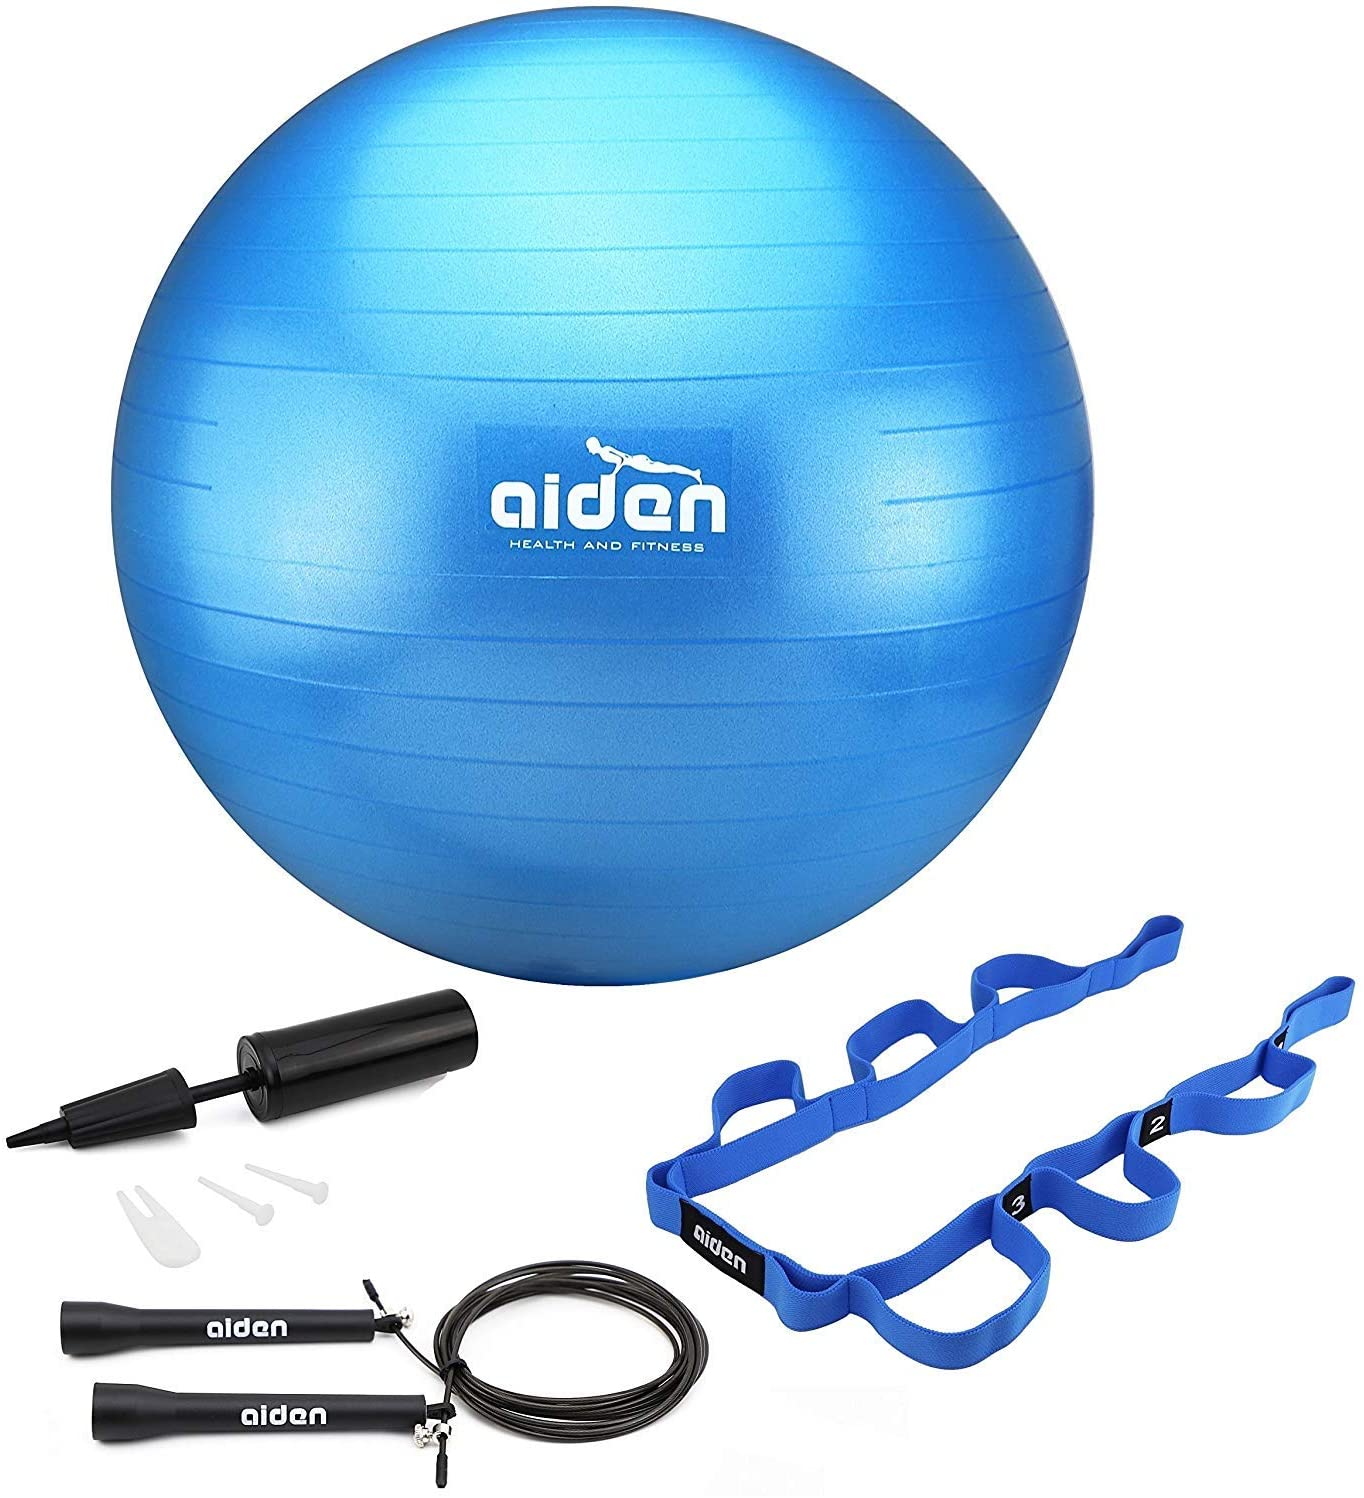 OLIVIA & AIDEN Exercise Ball Set - 65cm Anti-Burst Balance Ball for Yoga, Pilates, Birthing, Stability Training and Physical Therapy   Includes Stretch Band, Jump Rope and Air Pump